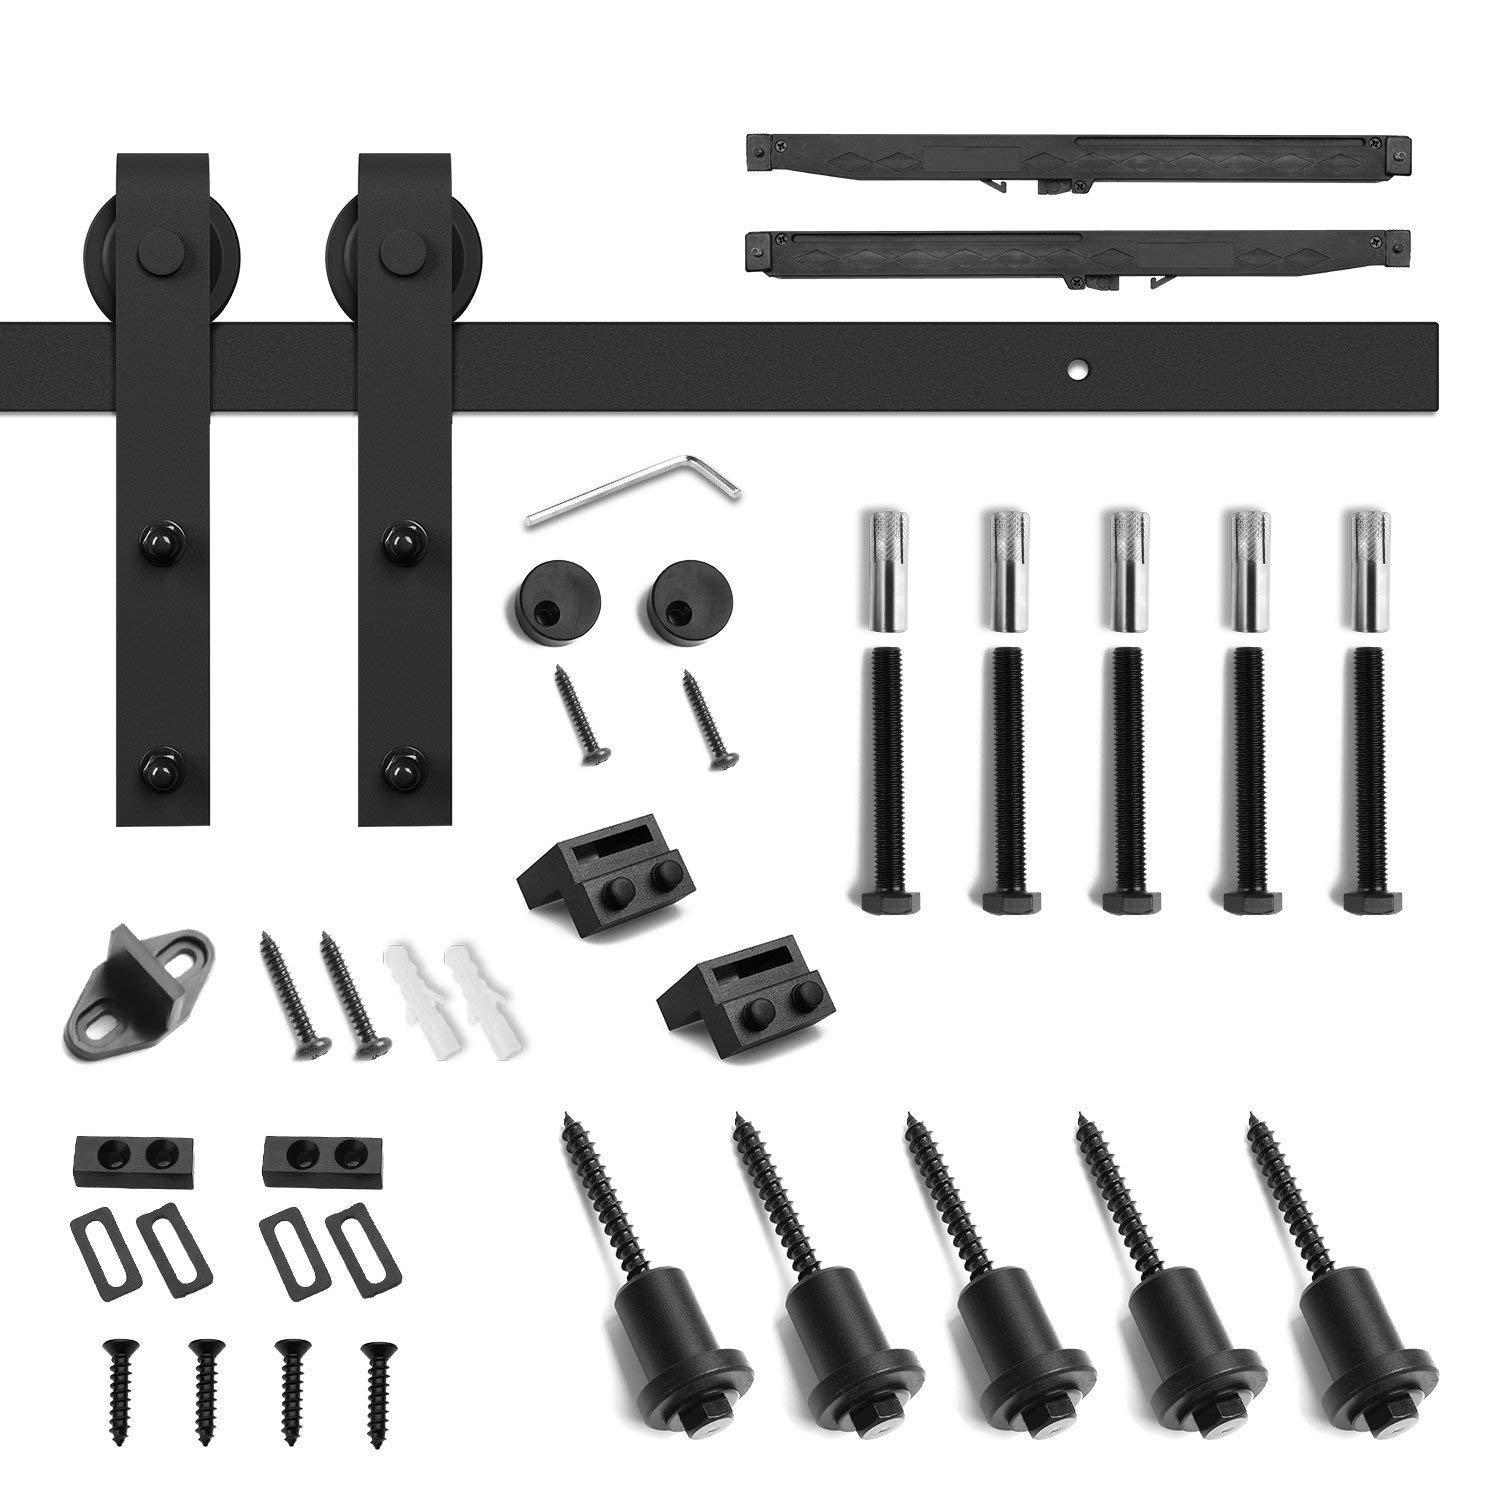 6.6ft Soft Close Heavy Duty Sturdy Sliding Barn Door Hardware Kit - Smoothly and Quietly - Simple and Easy to Install - Includes Step-By-Step Installation Instruction -Fit 36''-40'' Door Panel(J Shape) by SMARTSTANDARD (Image #5)